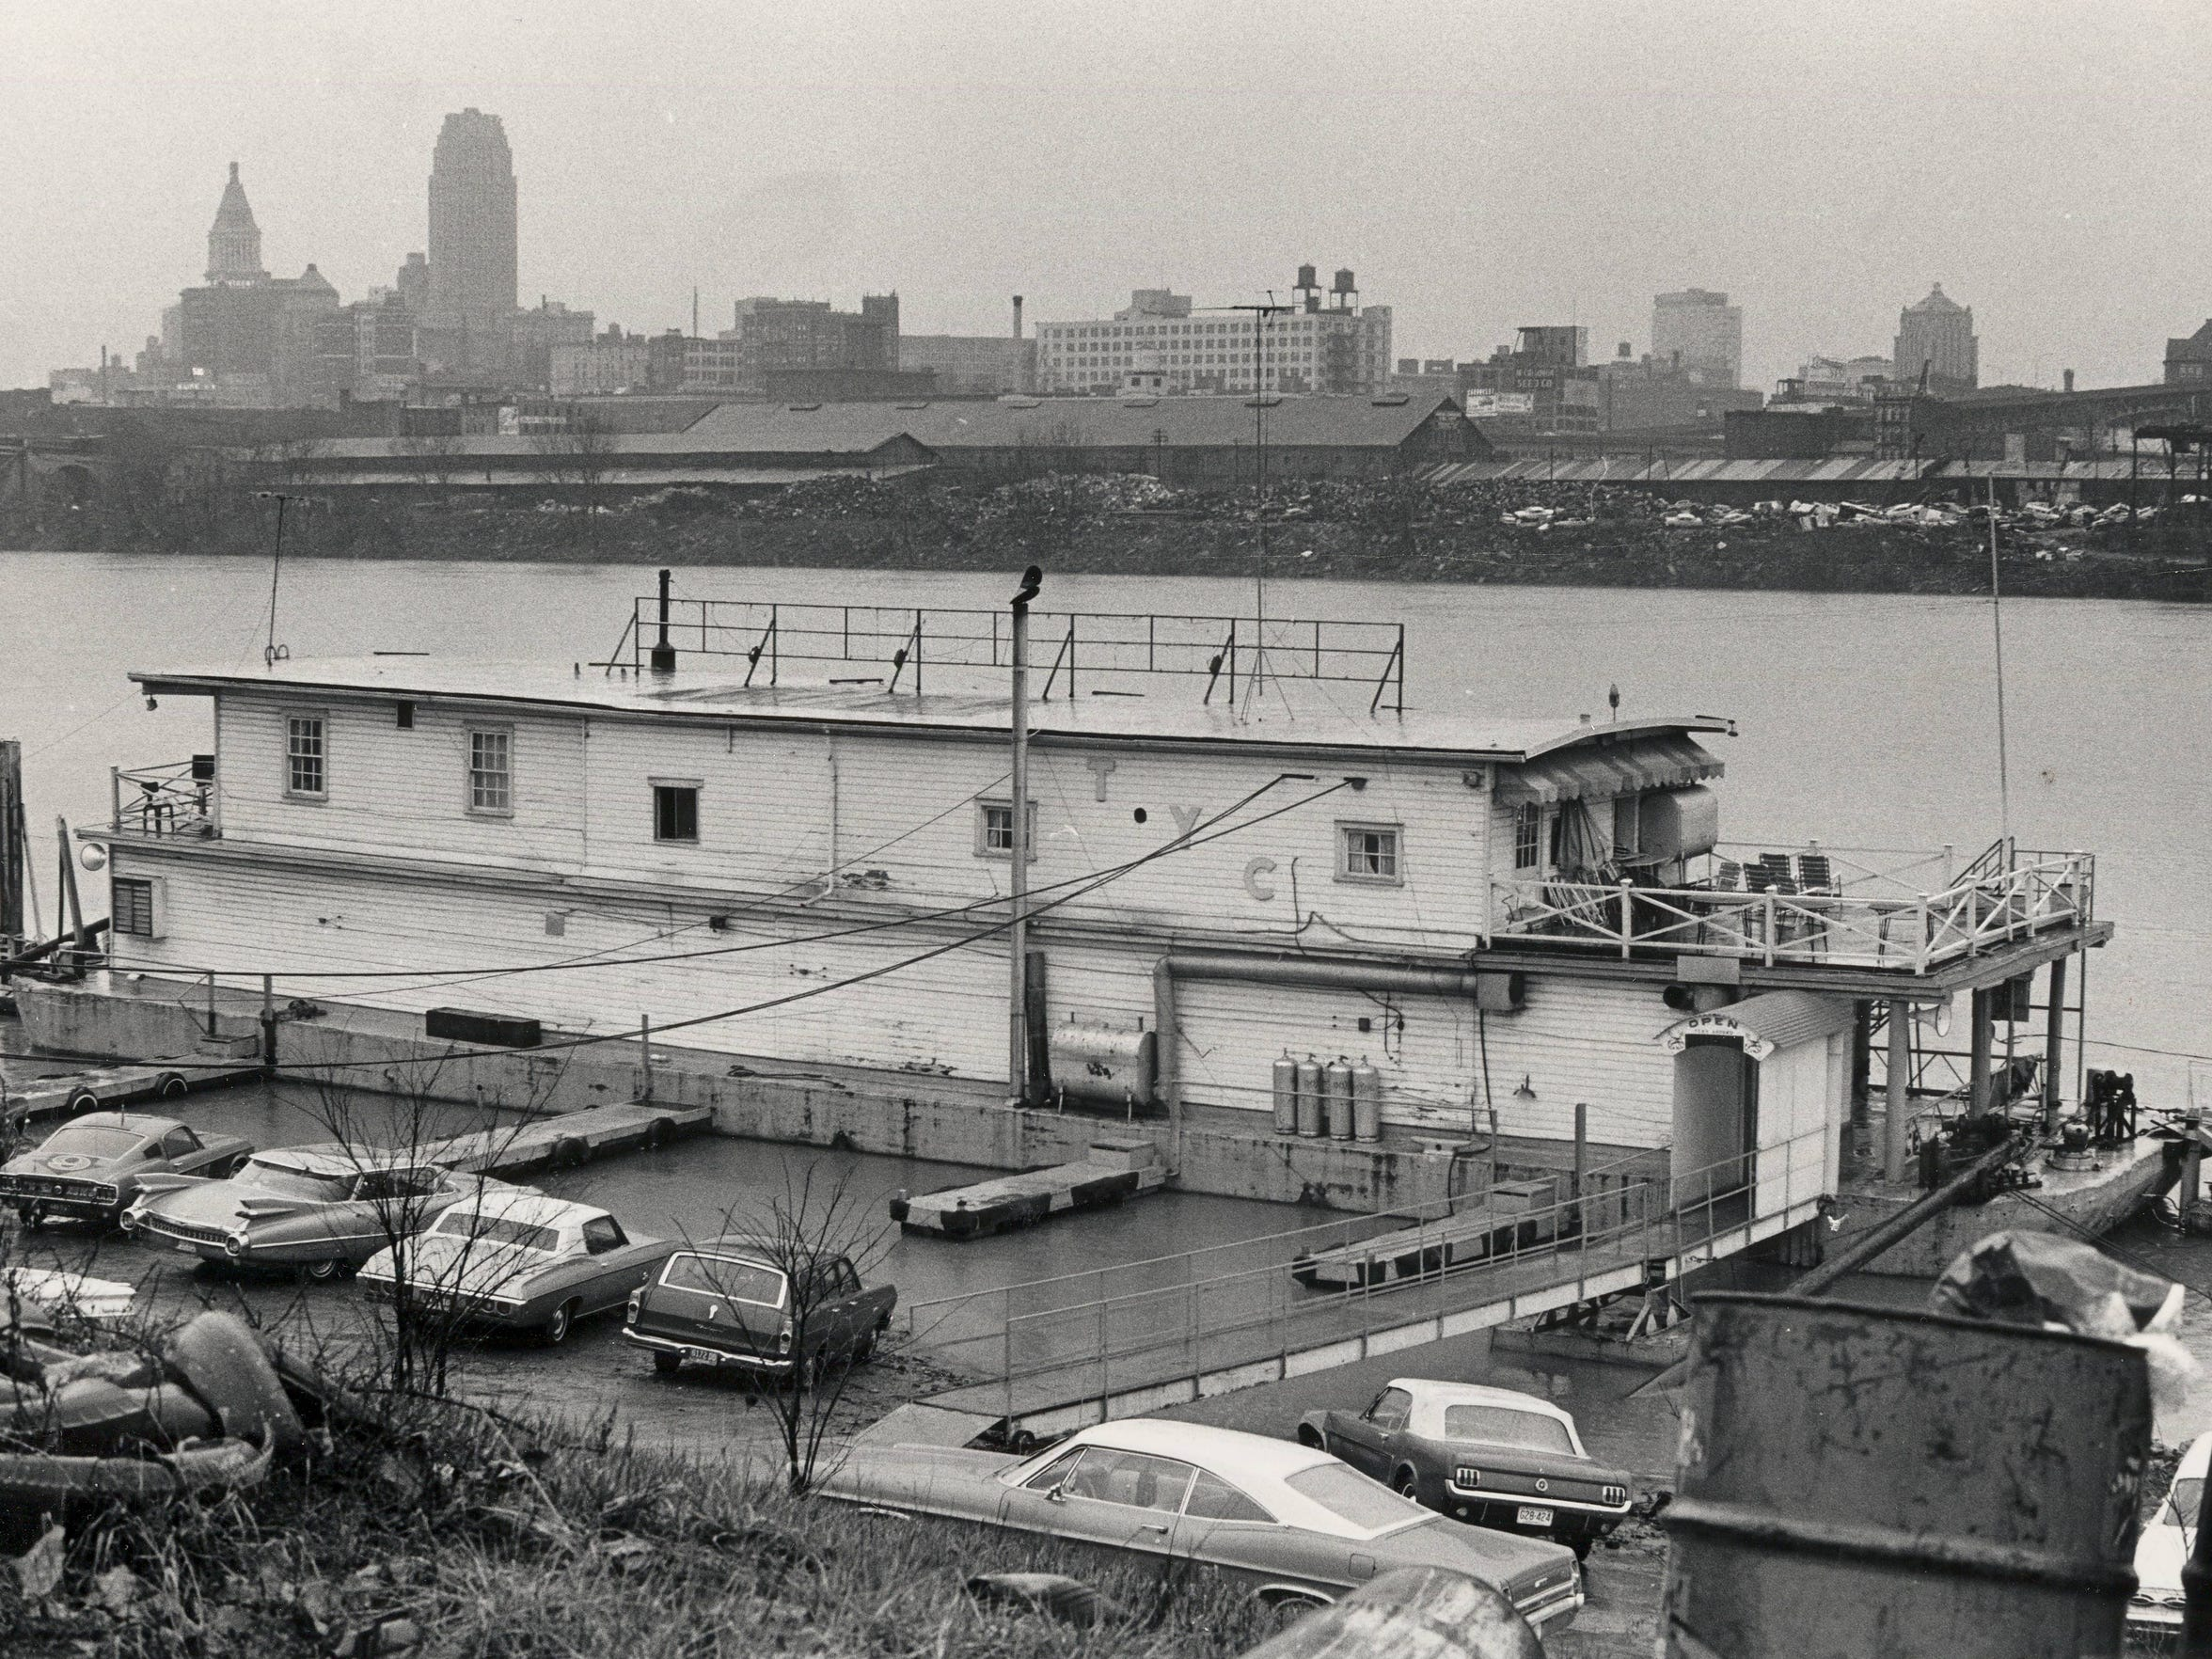 The city of Newport began trying to improve its image by taking advantage of its waterfront property by erecting yacht clubs along the shore of the Ohio River. The Tri-City Yacht Club, located at the end of Beech Street, is pictured in 1968. It stood about a mile from the Newport Yacht & Tennis Club, where Retha Welch would be killed in 1987. Enquirer file